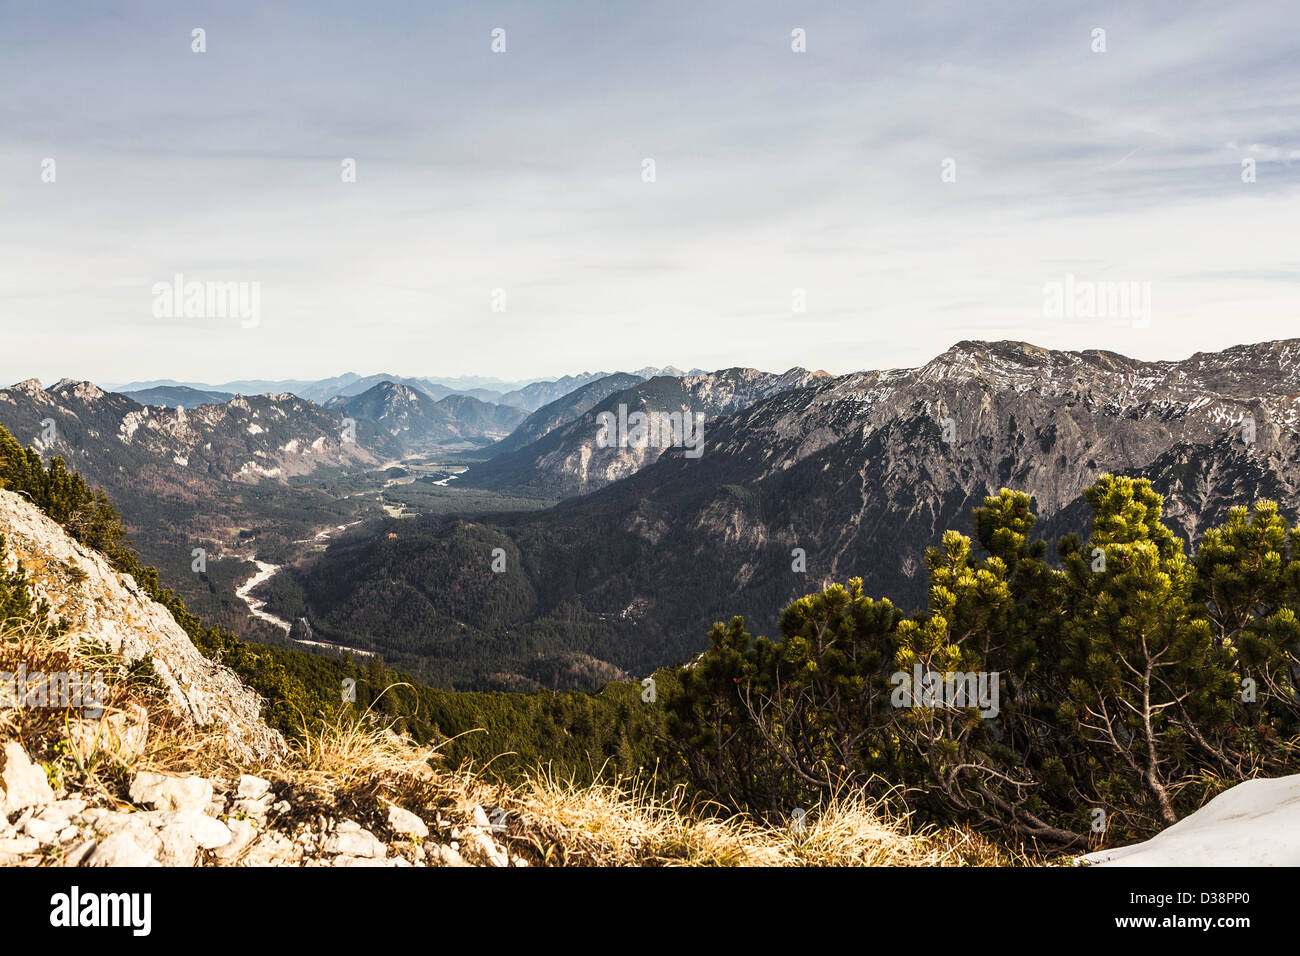 Mountains and trees in rural landscape - Stock Image